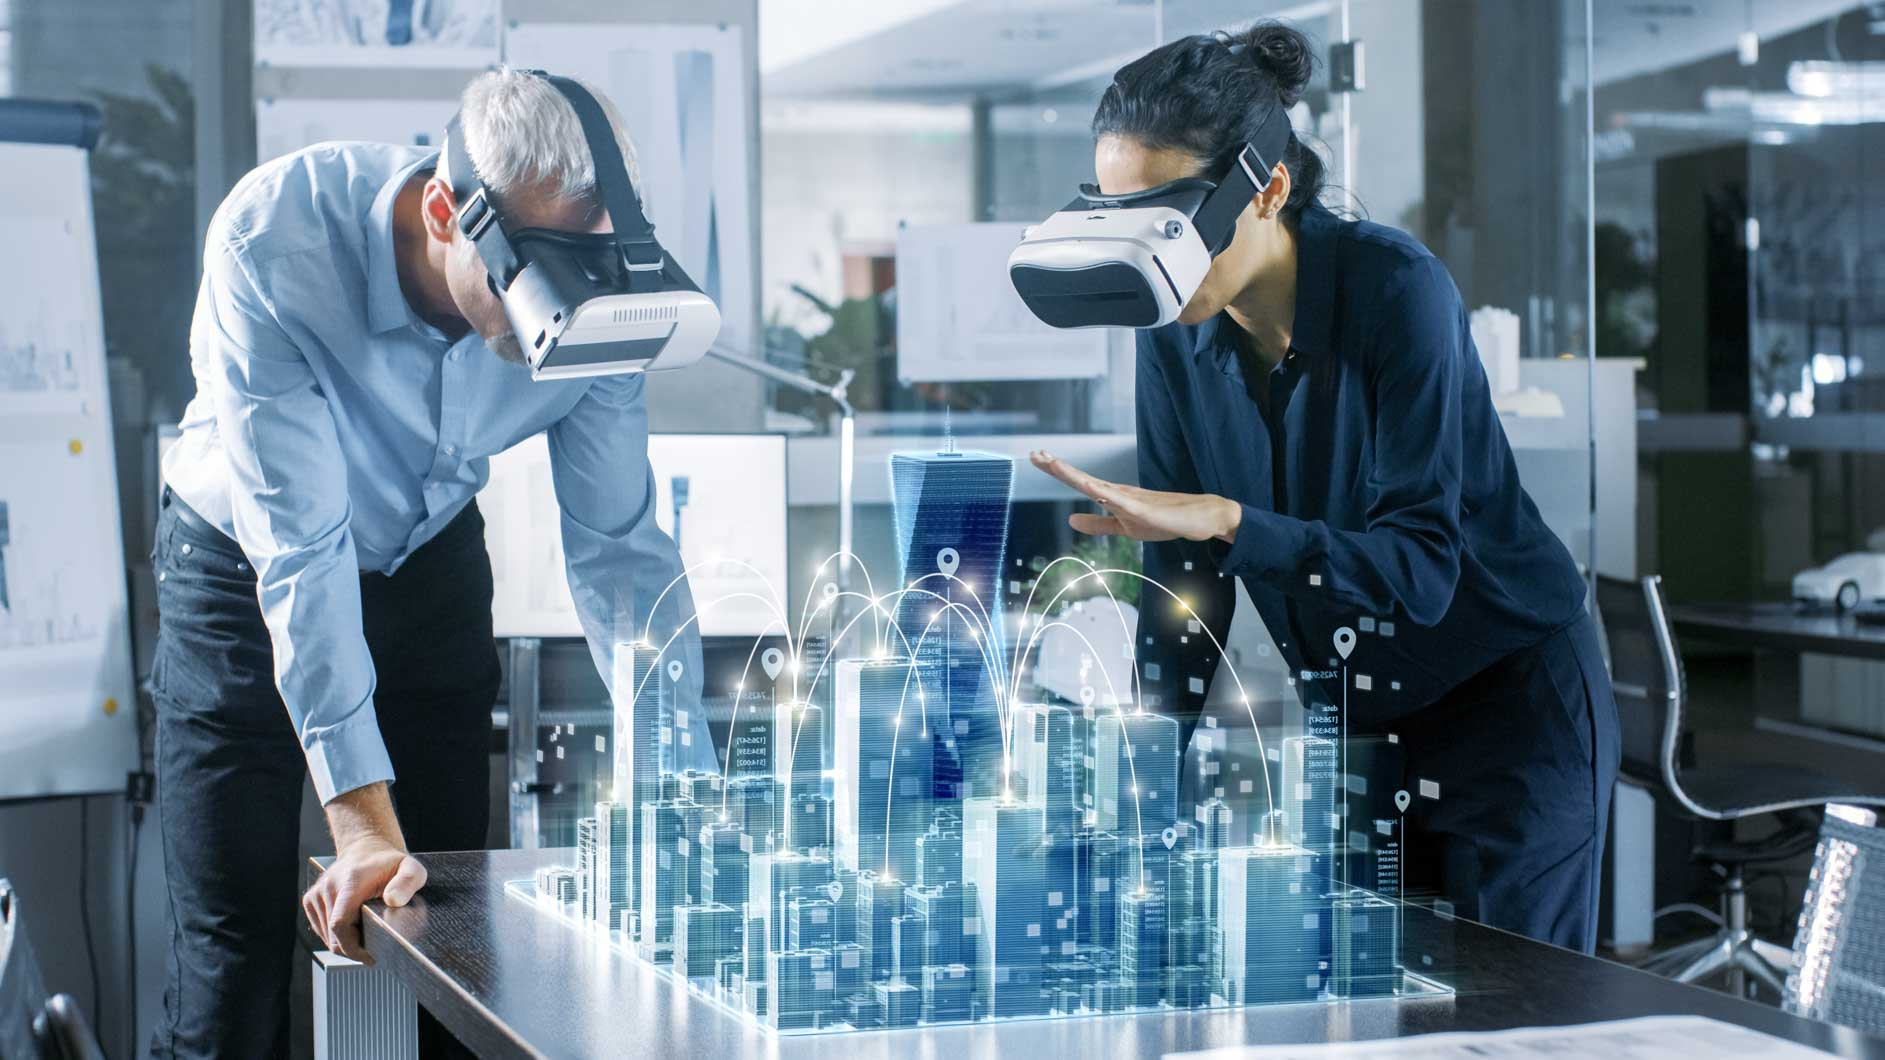 Man and woman of different ethnicities wearing Virtual Reality goggles and collaborating on 3D visualisation of cityscape